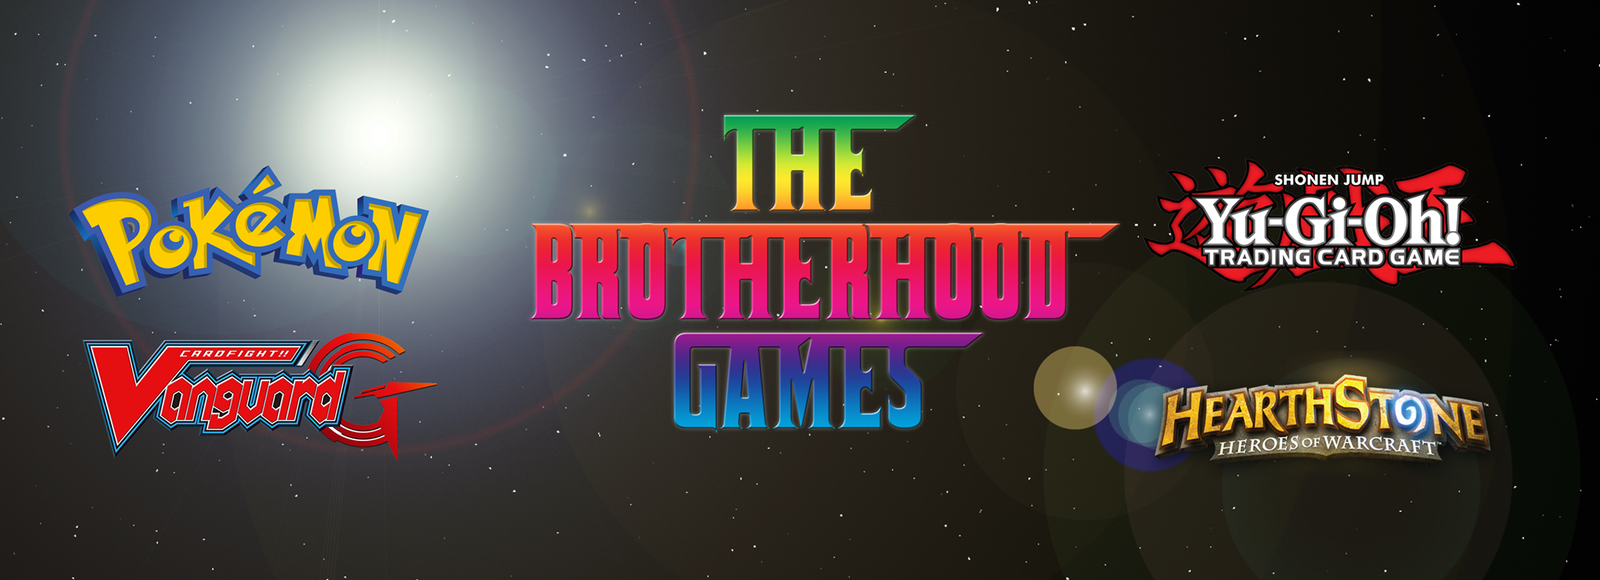 The Brotherhood Games Ltd